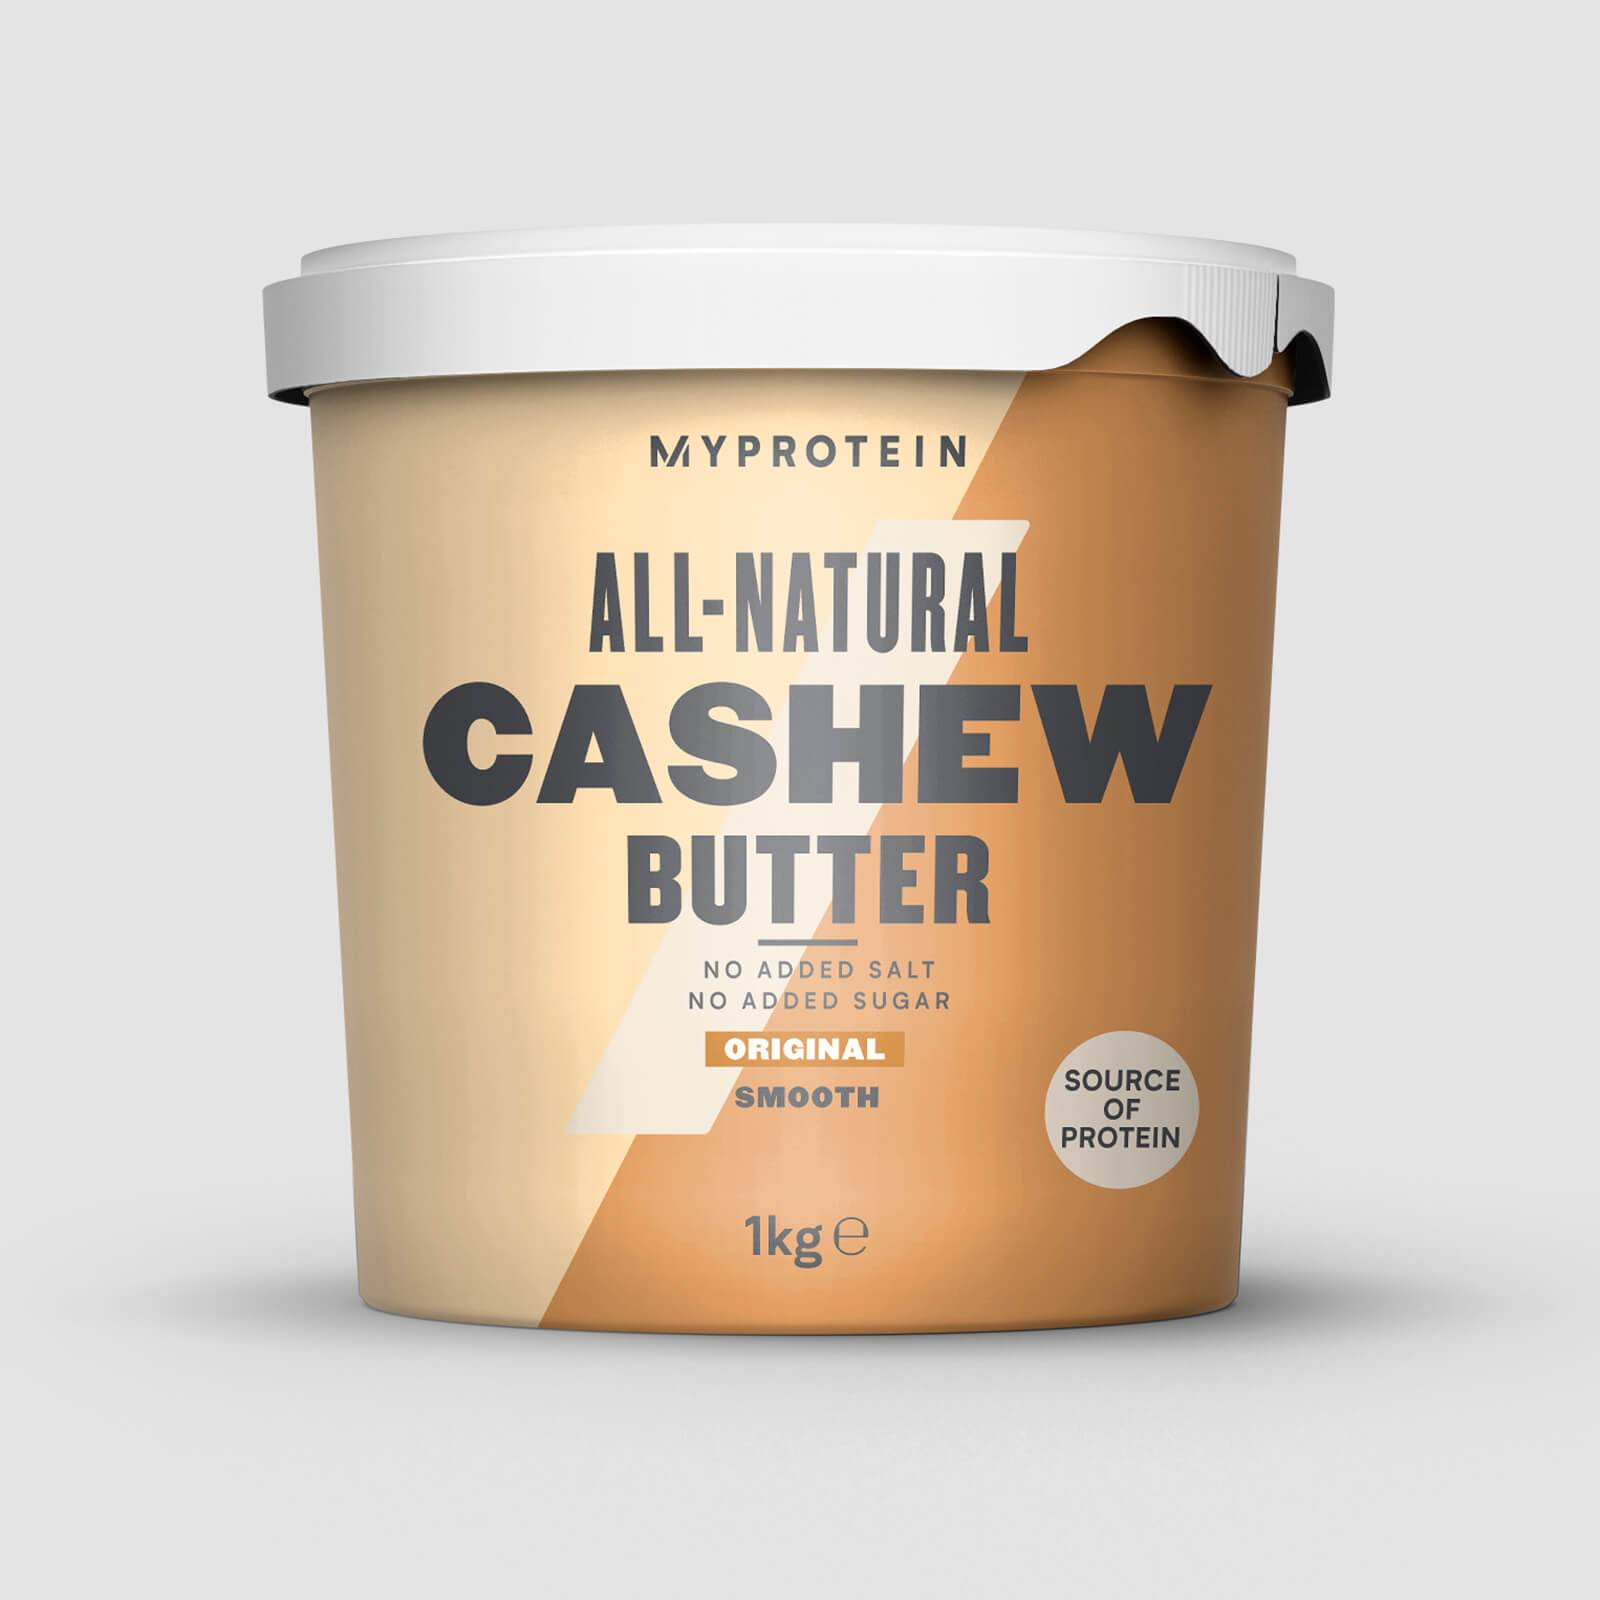 Myprotein All-Natural Cashew Butter - 1kg - Original - Smooth